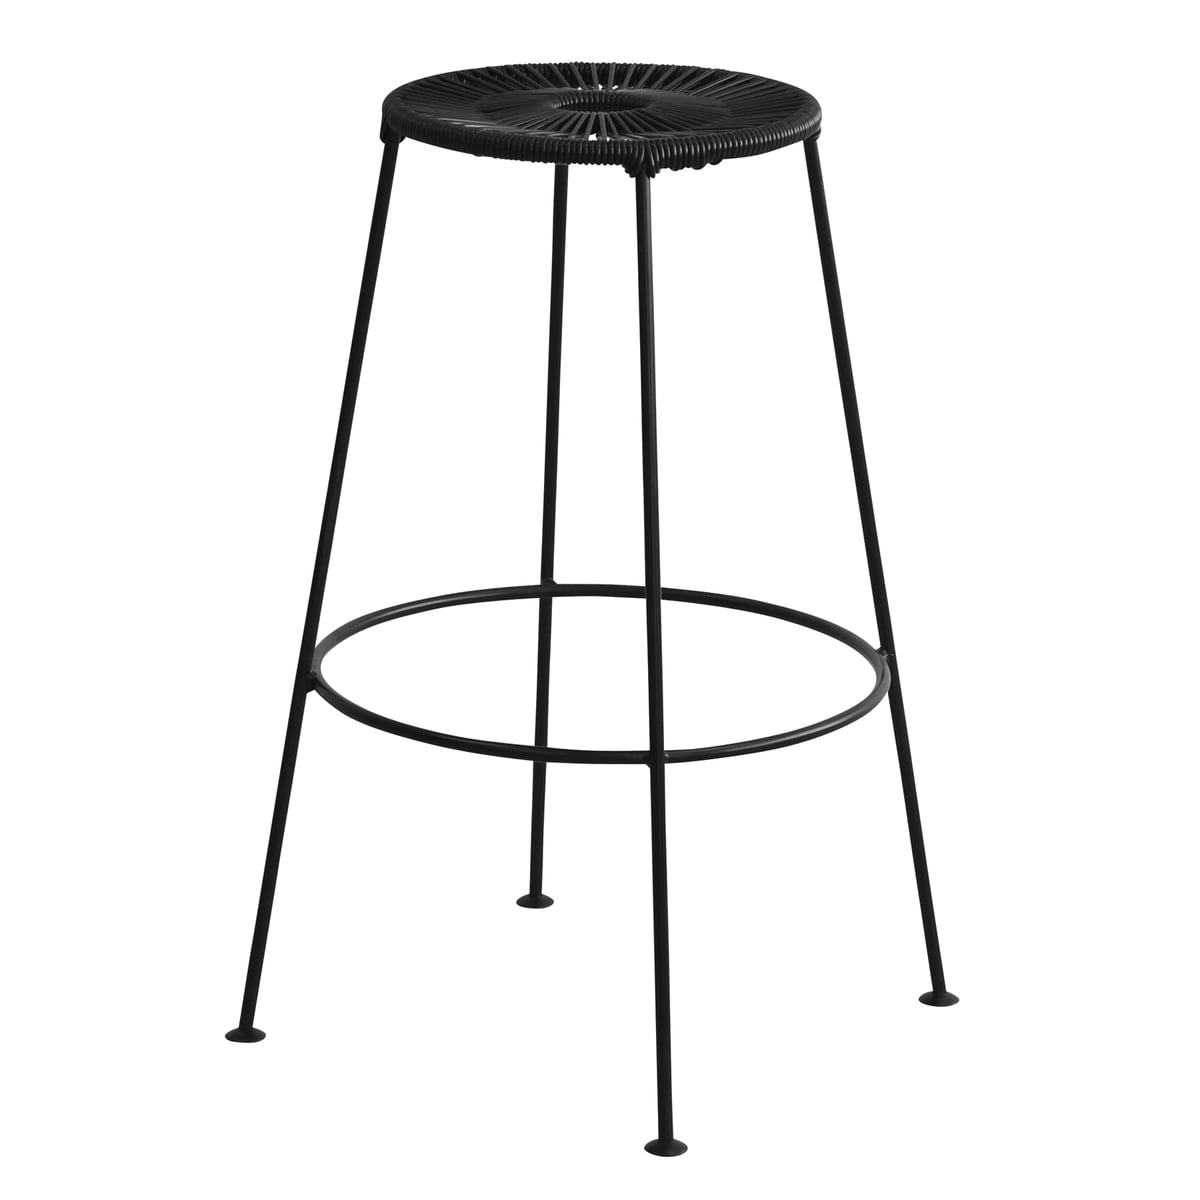 Acapulco Barstool By Ok Design In The Shop